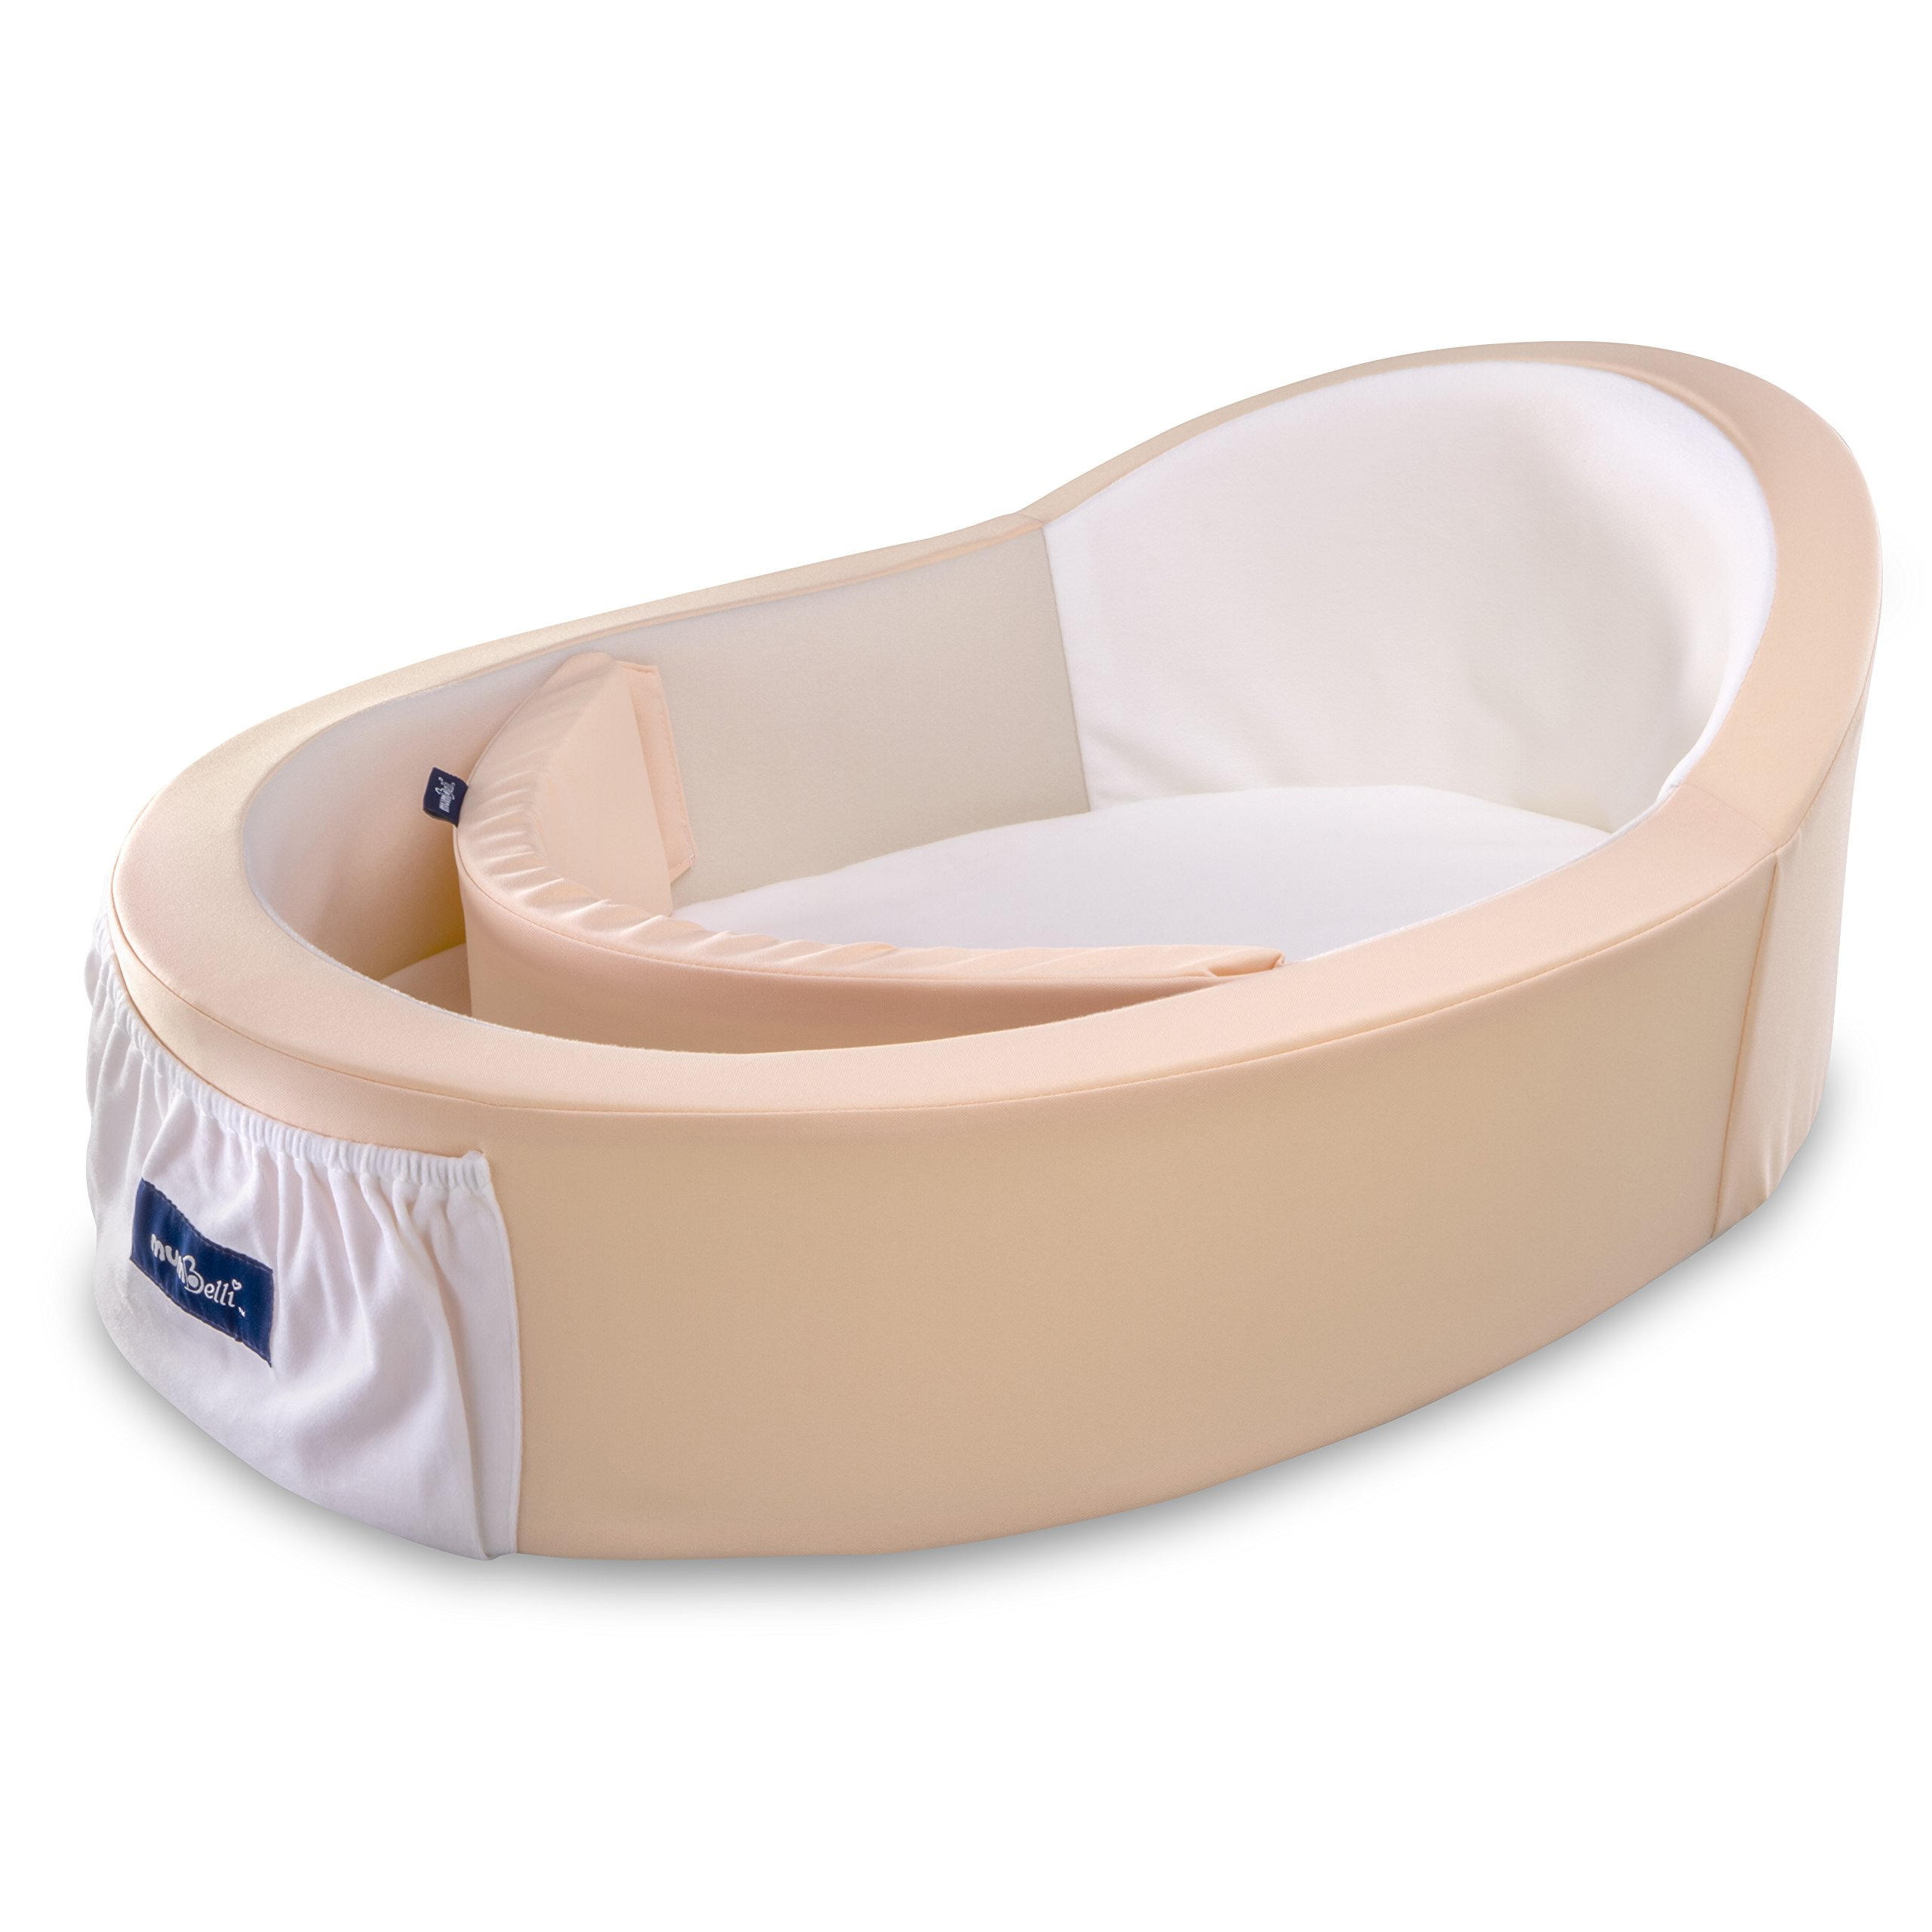 Mumbelli – The only Womb-Like and Adjustable Infant Bed; Patented Design (Peach). Light Weight for Easy Travel, Perfect for Lounging, Resting or co Sleeping. Reflux Wedge and Carry Bag Included.